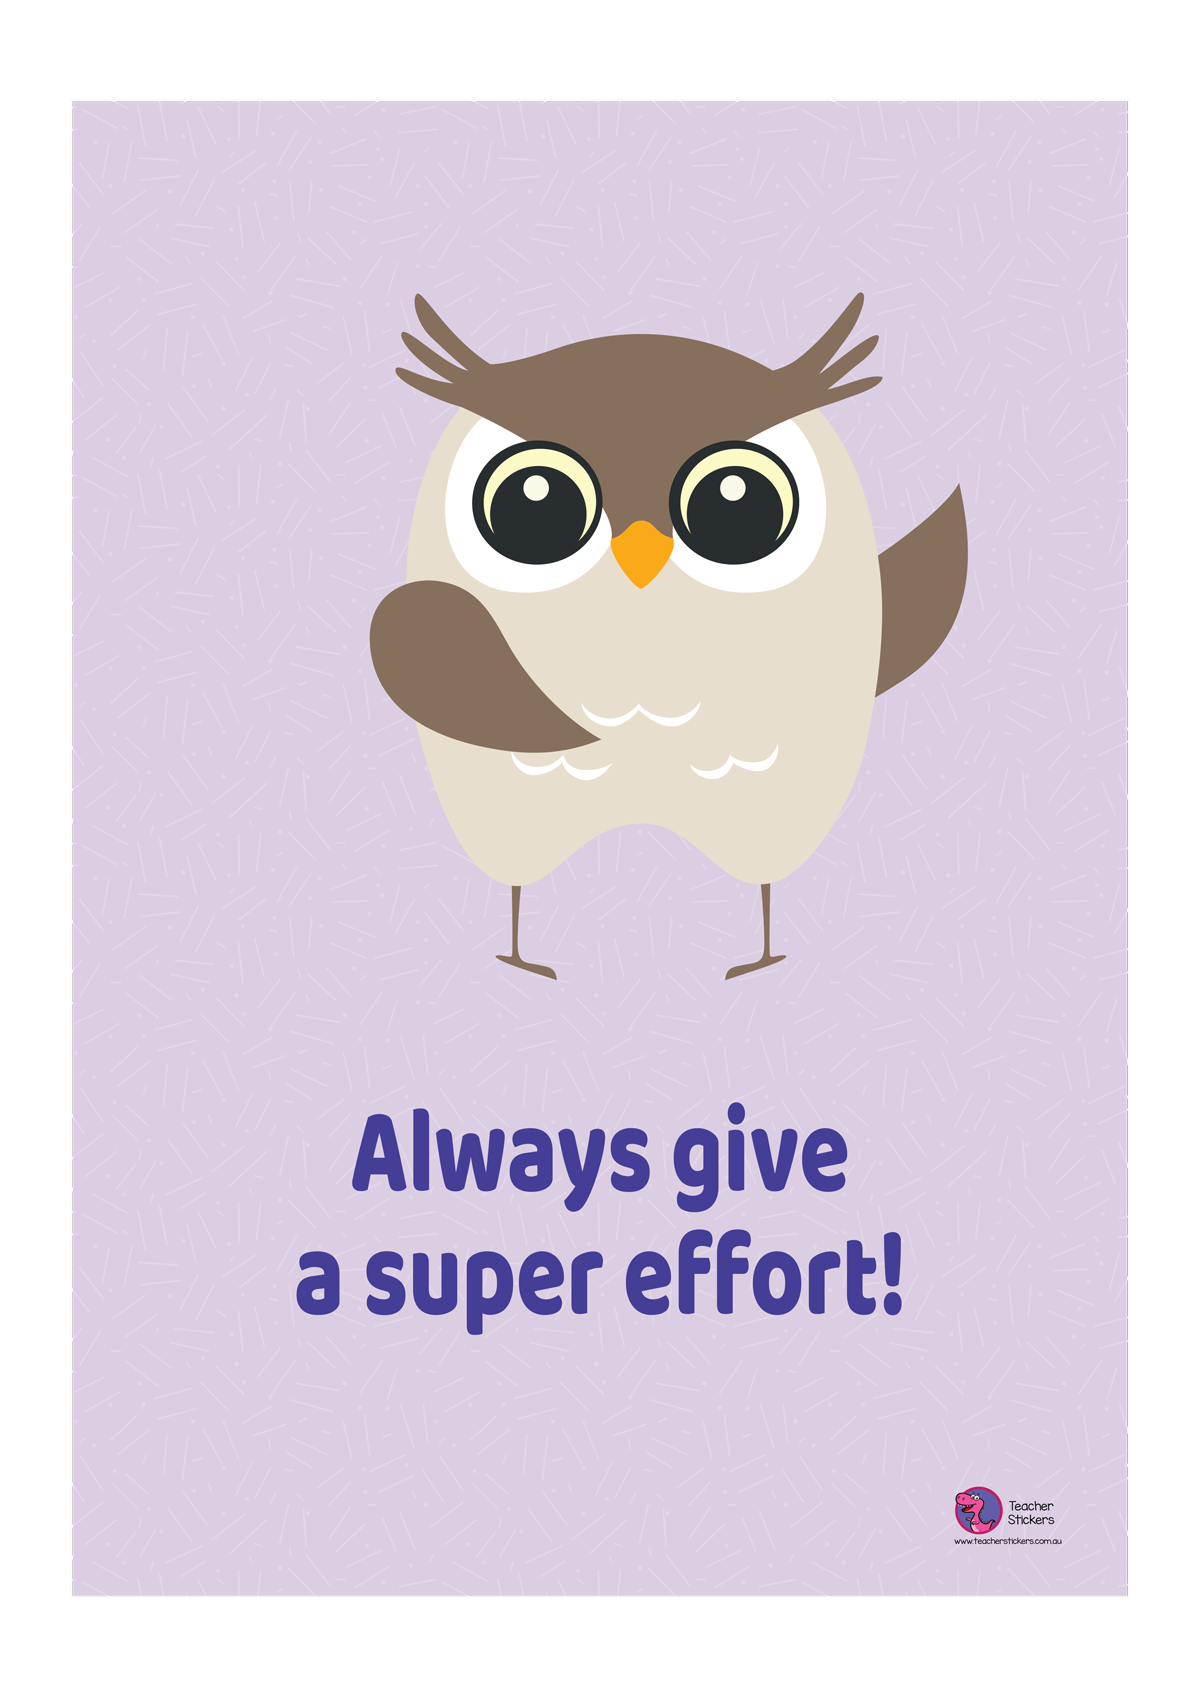 Owl-Poster-Always-give-a-super-effort